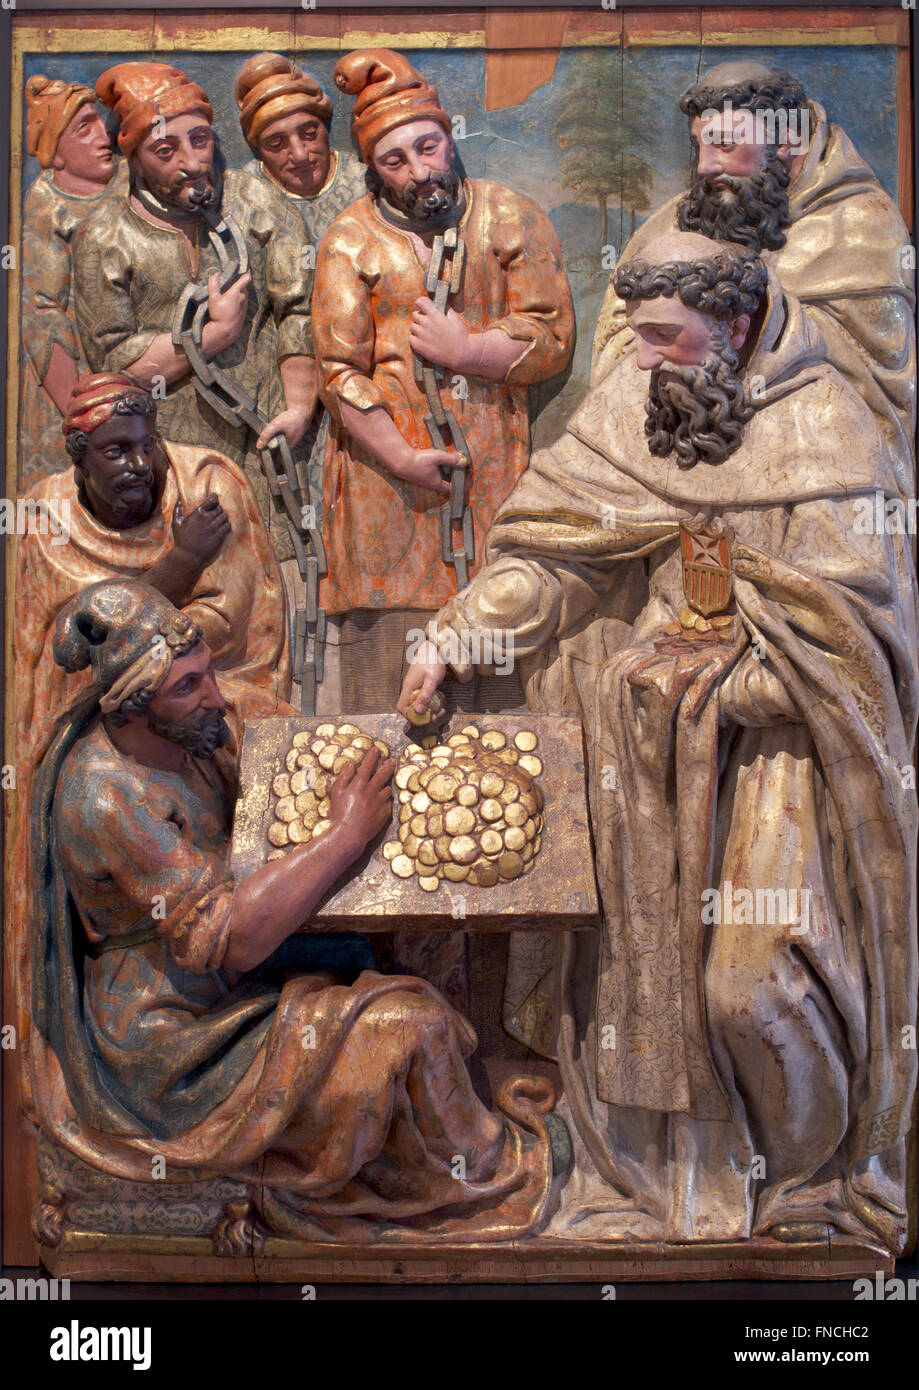 Museo Nacional de Escultura National Sculpture Museum Valladolid Saint Peter Nolasco redeeming captives Pedro de - Stock Image